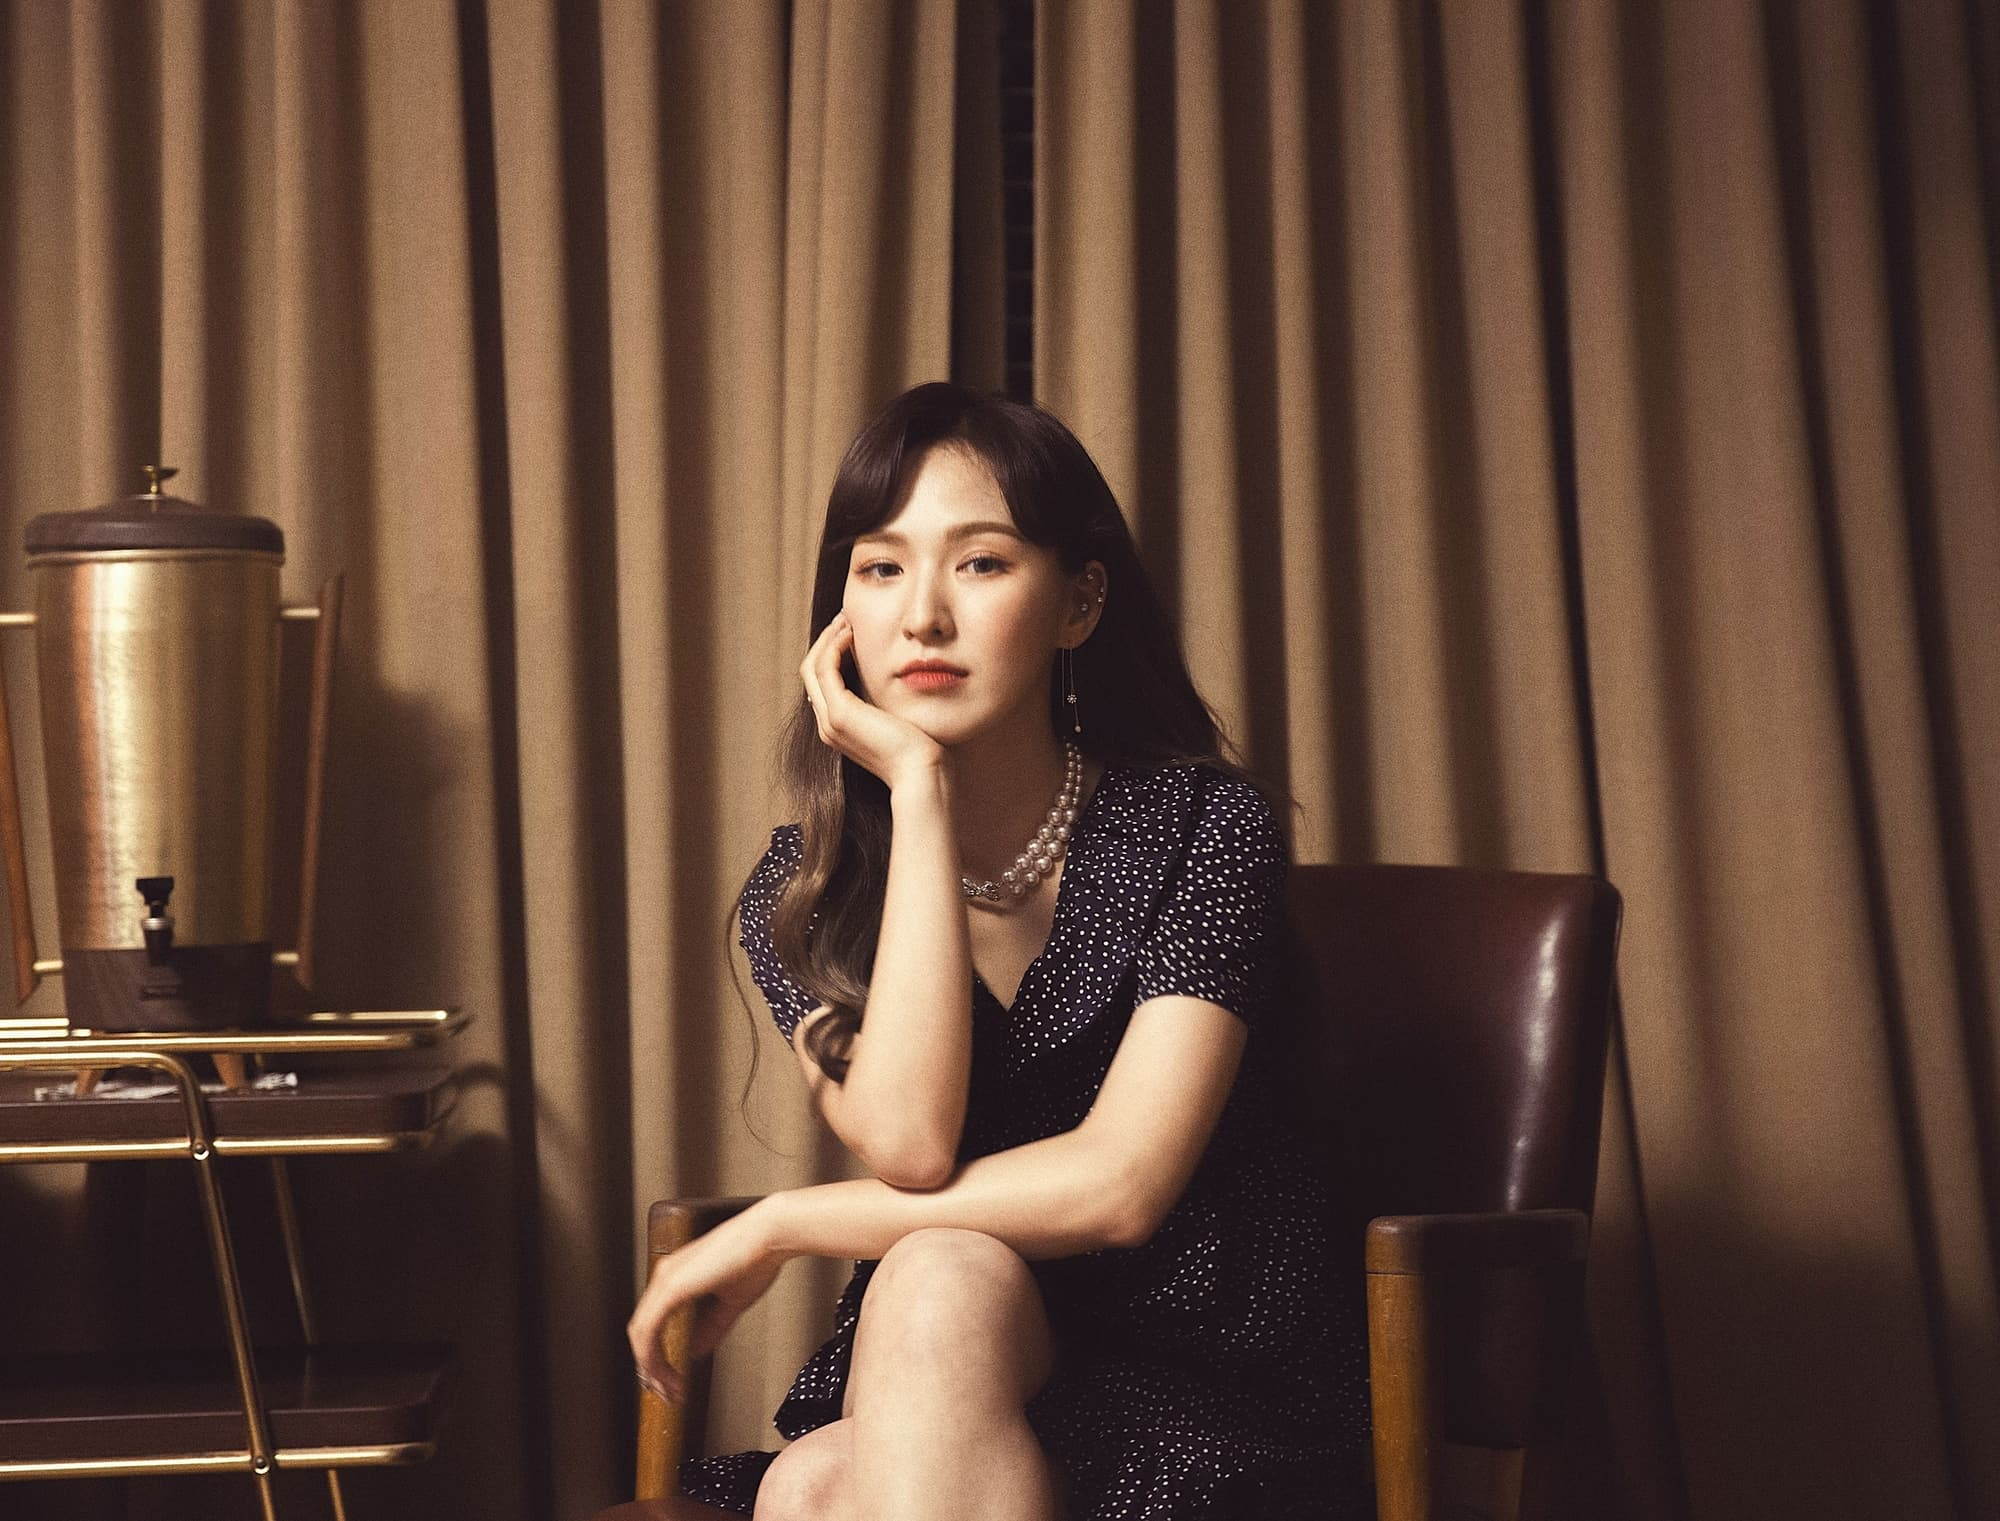 Hot girl group Red Velvet has taken the K-pop world by storm. Here's a look into the life of popular vocalist Wendy.